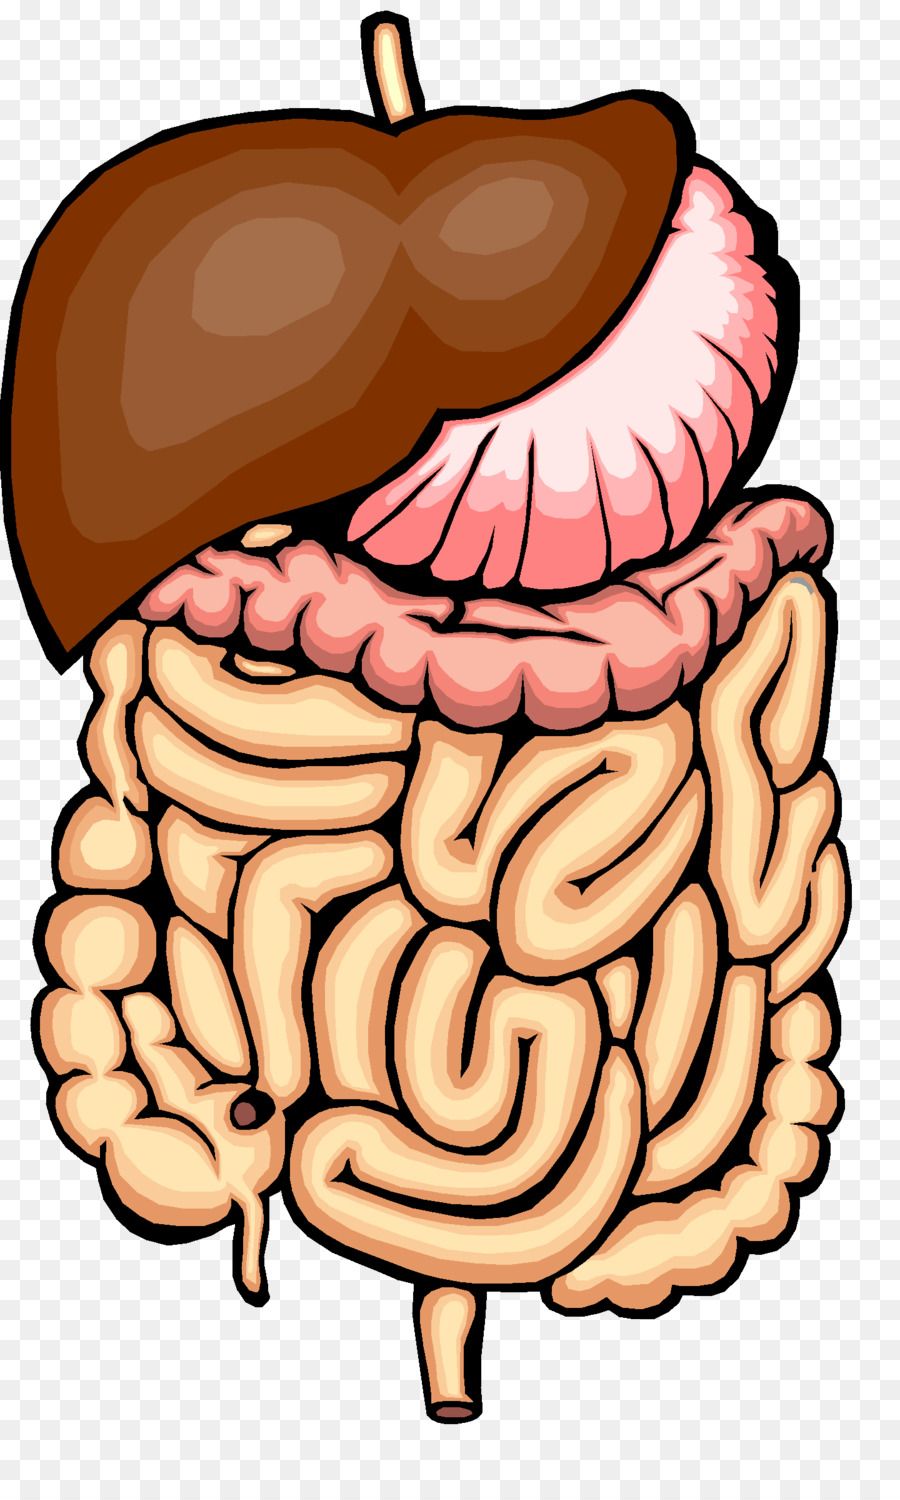 Digestive System PNG HD - 146006